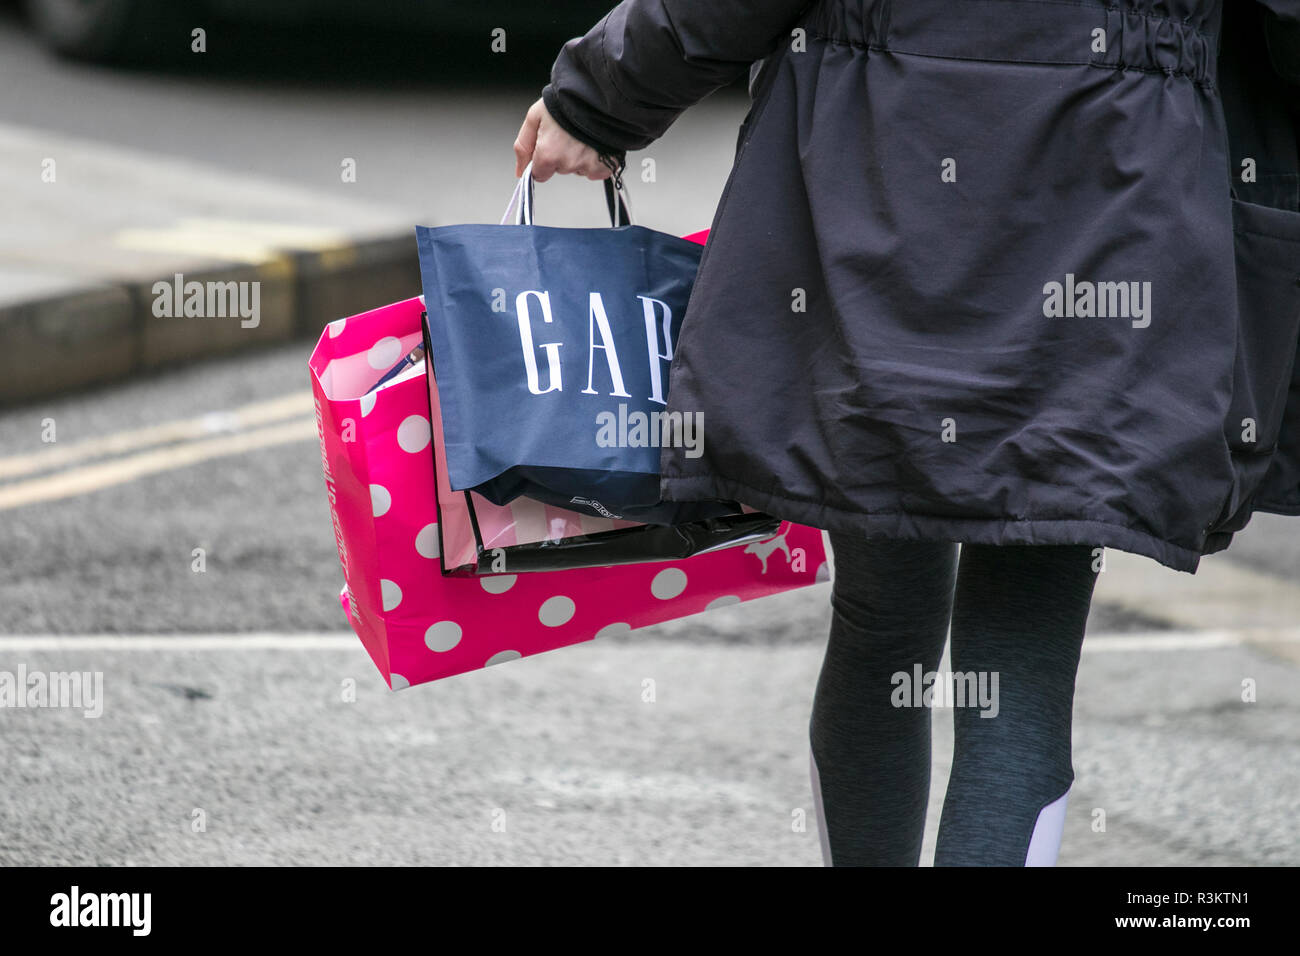 c985b90fb08 Black Friday Sales. 23rd November 2018. People flock to stores to bag high  street bargains on one of the biggest shopping days of the year.